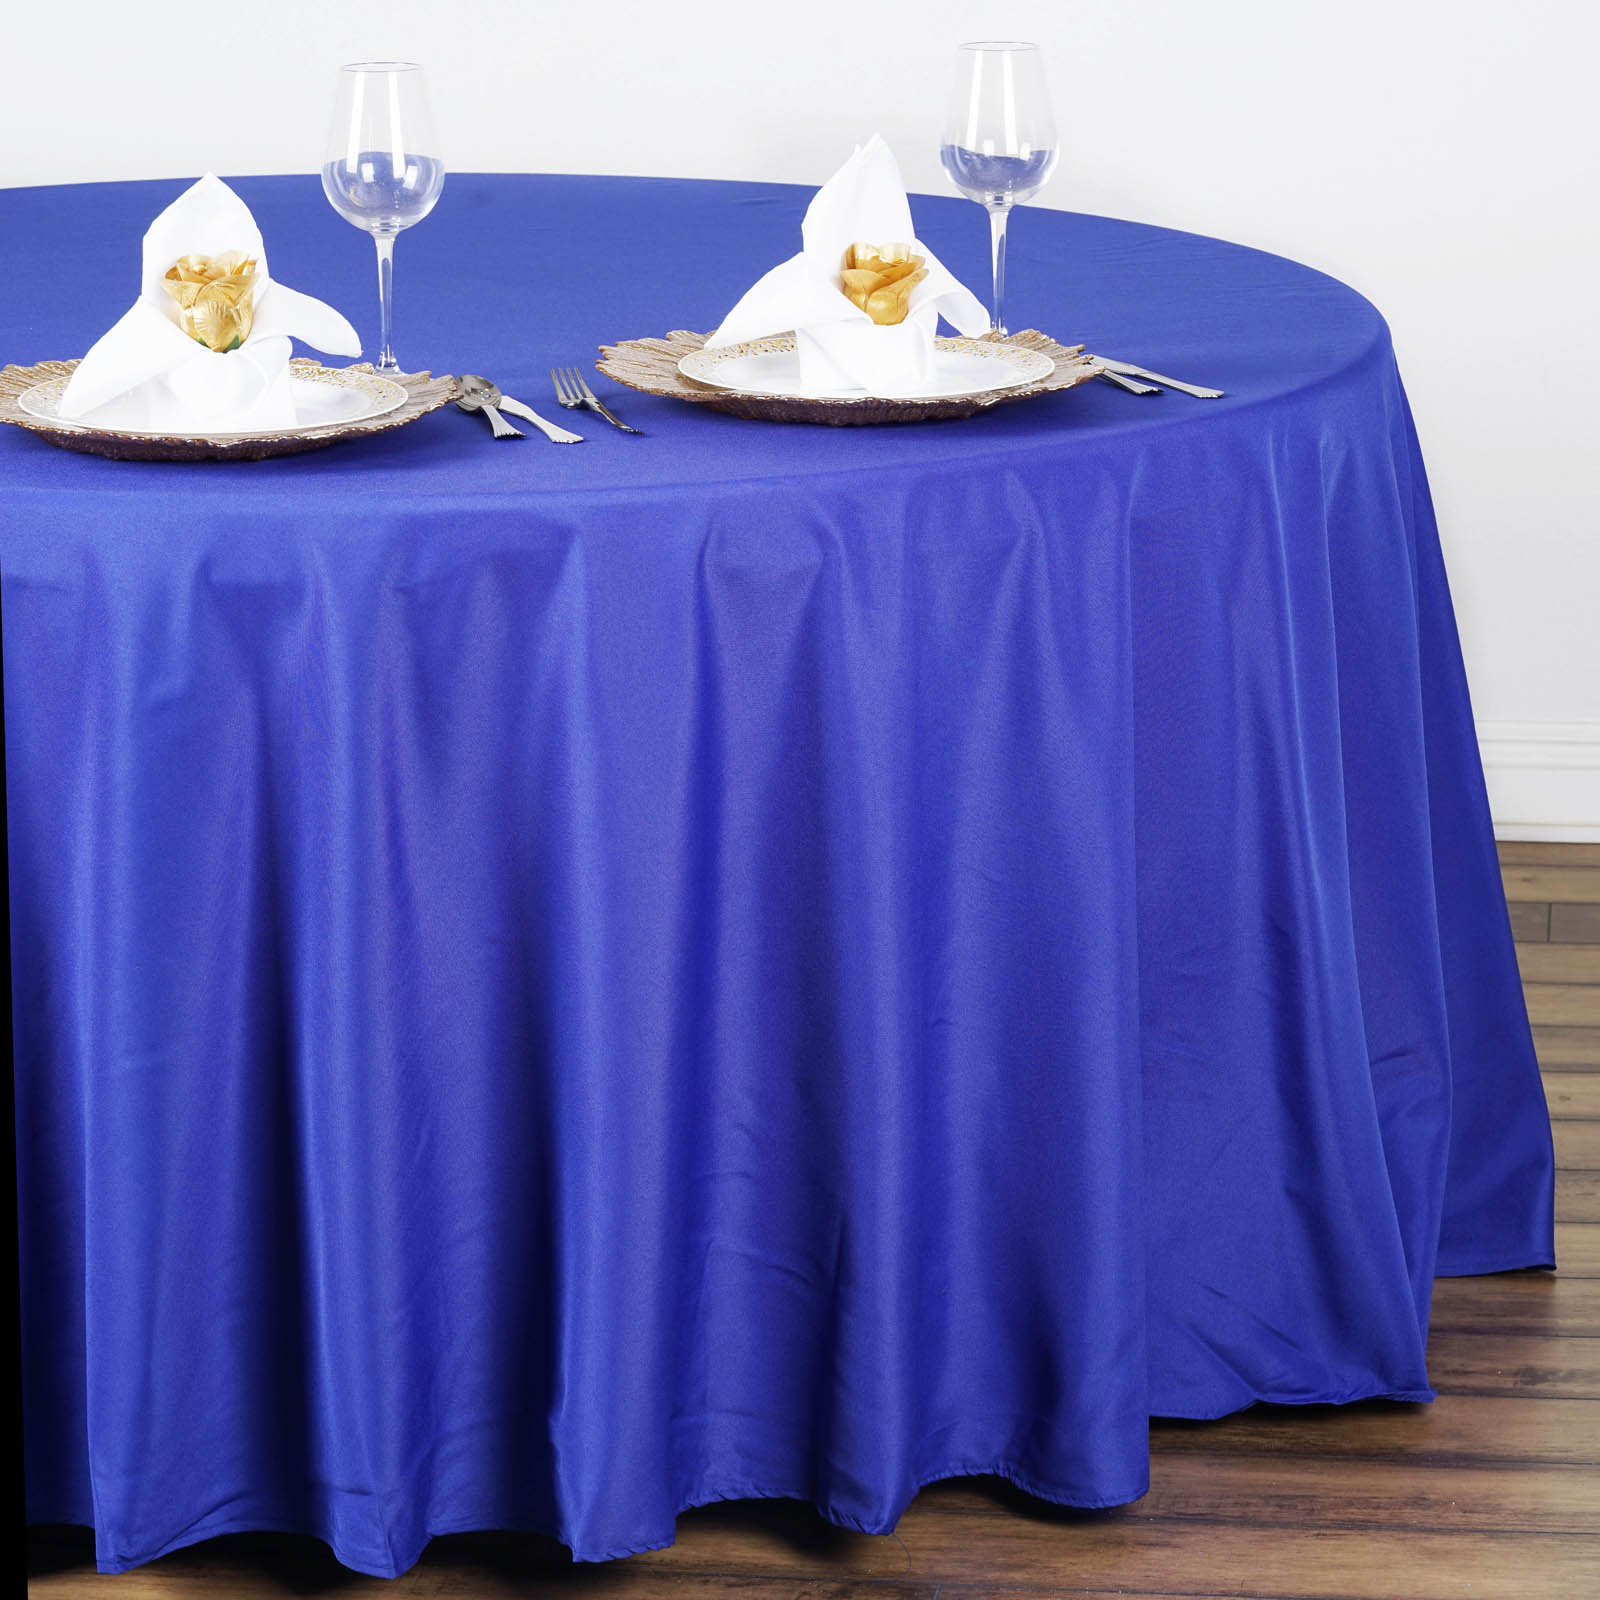 how to make round wedding tablecloths